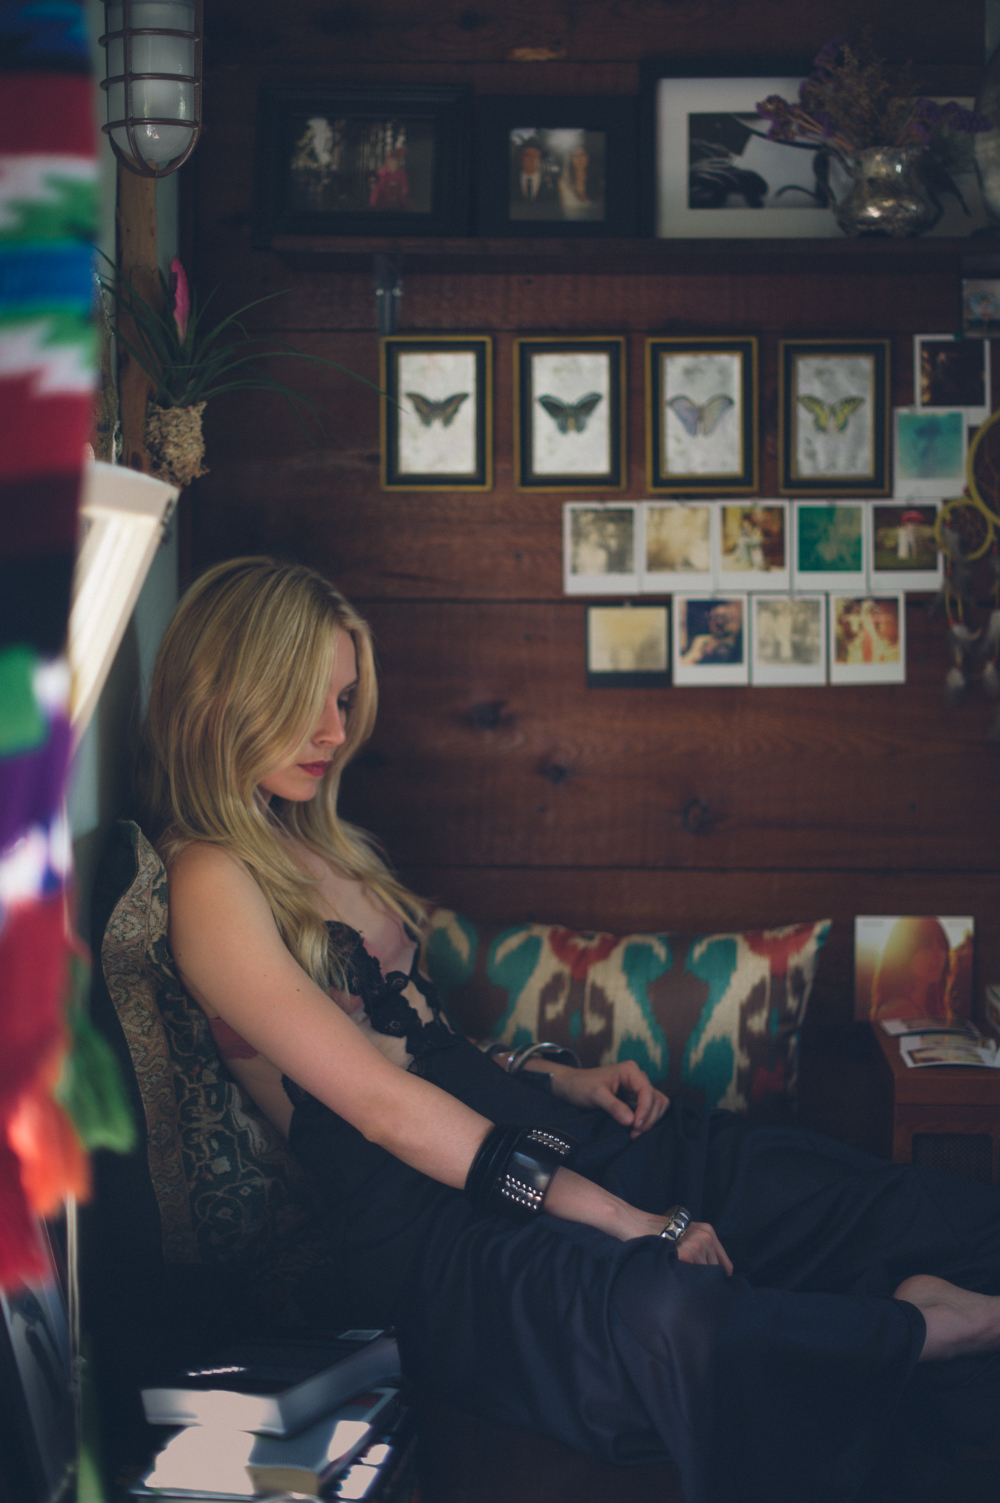 Sarah Sanguin Carter at the Feather Love Workshop in San Diego - Photograph by Briana Morrison